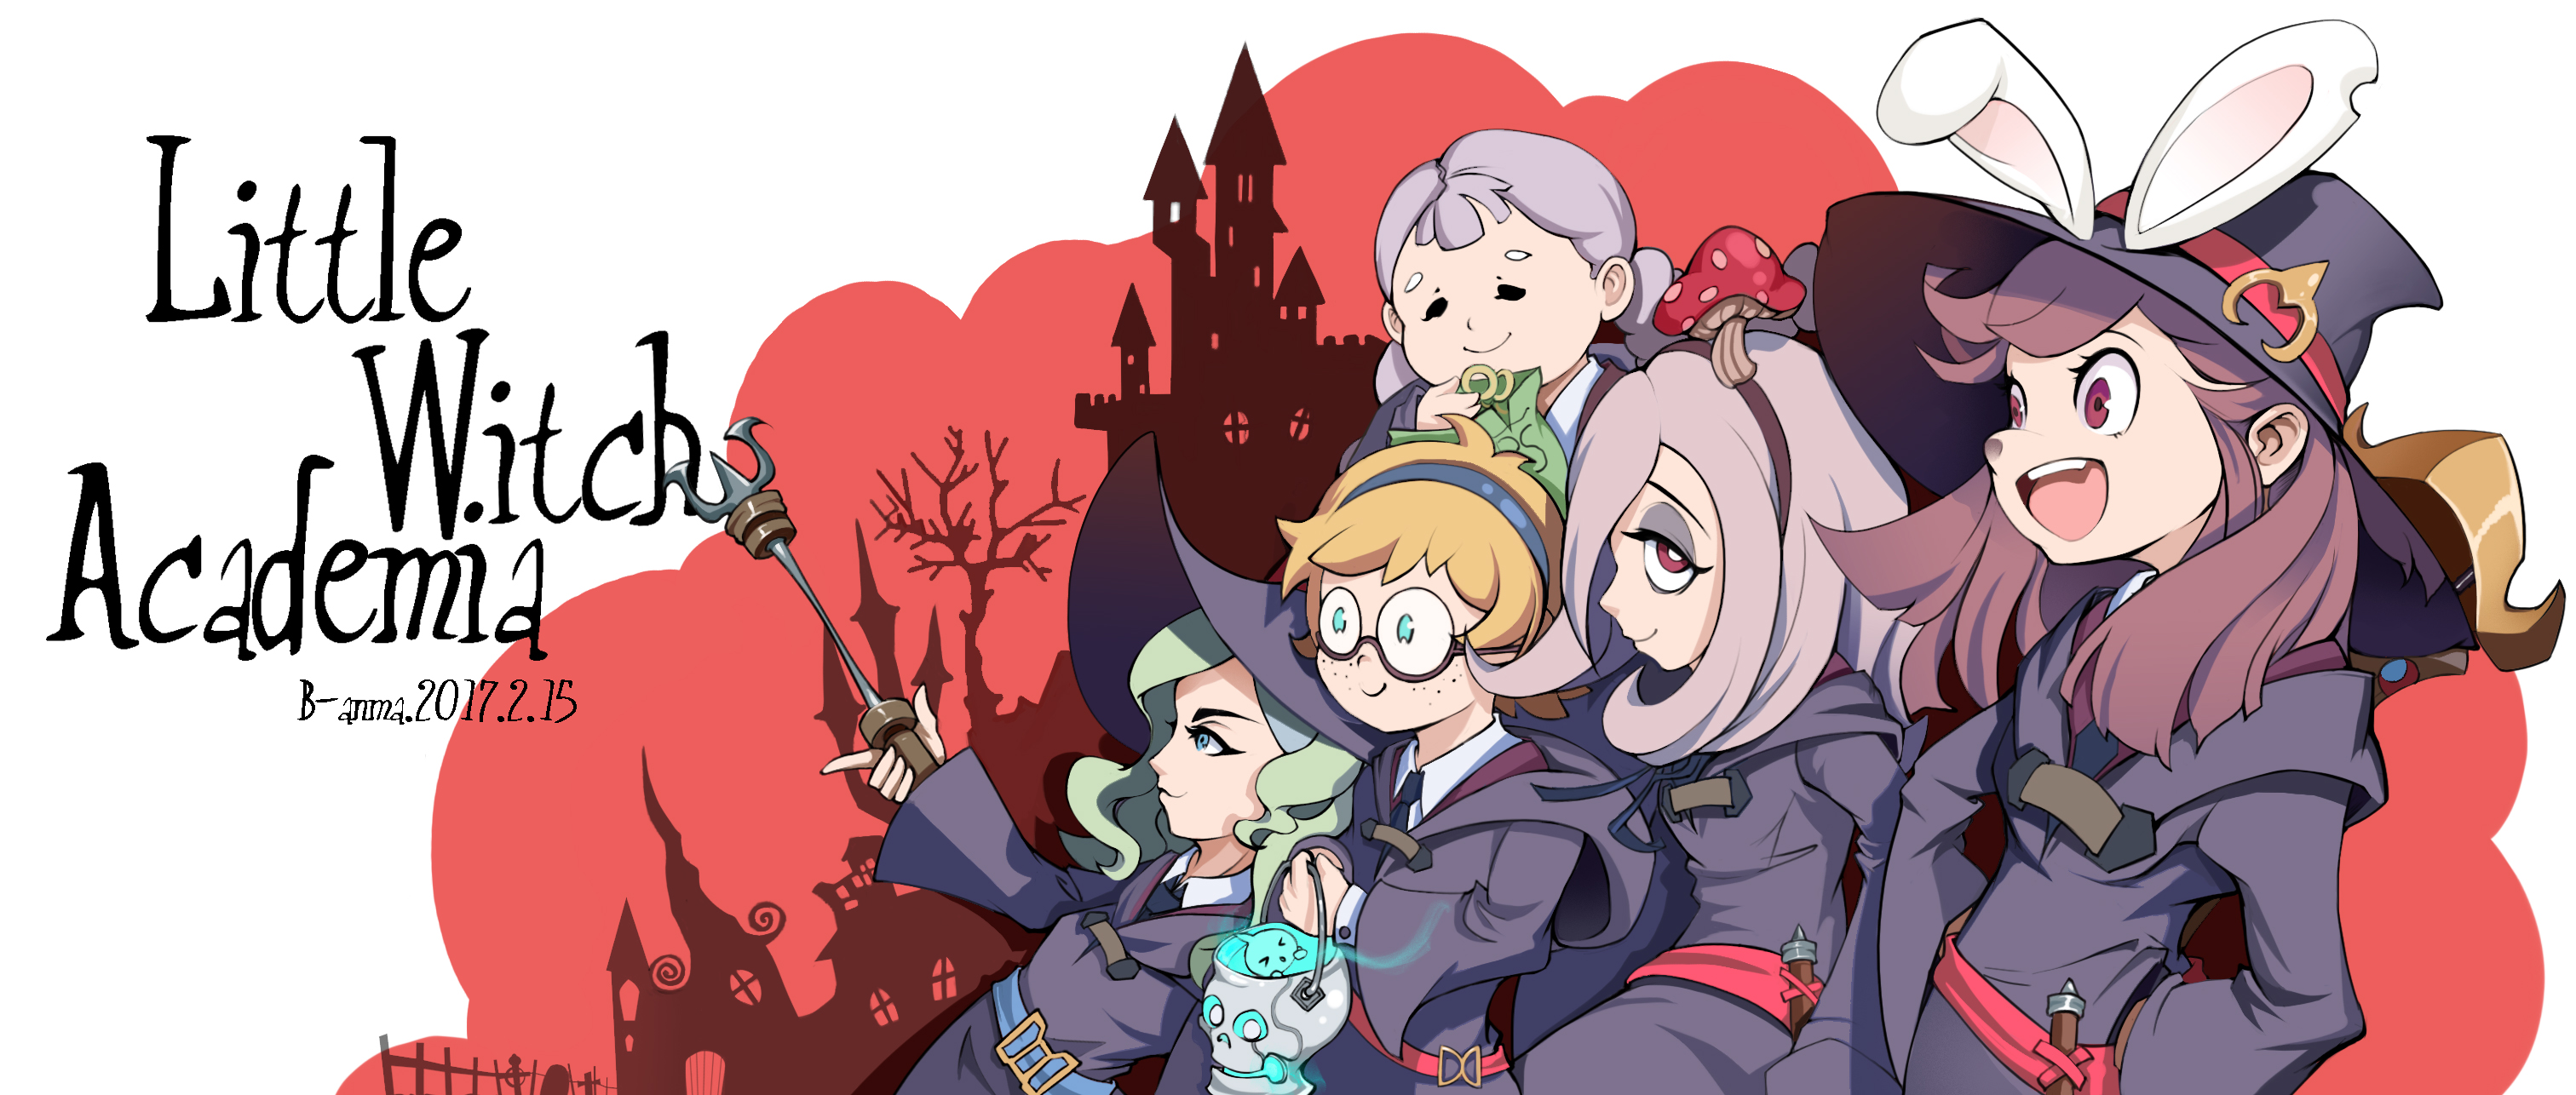 Little Witch Academia Hd Wallpaper Background Image 3024x1286